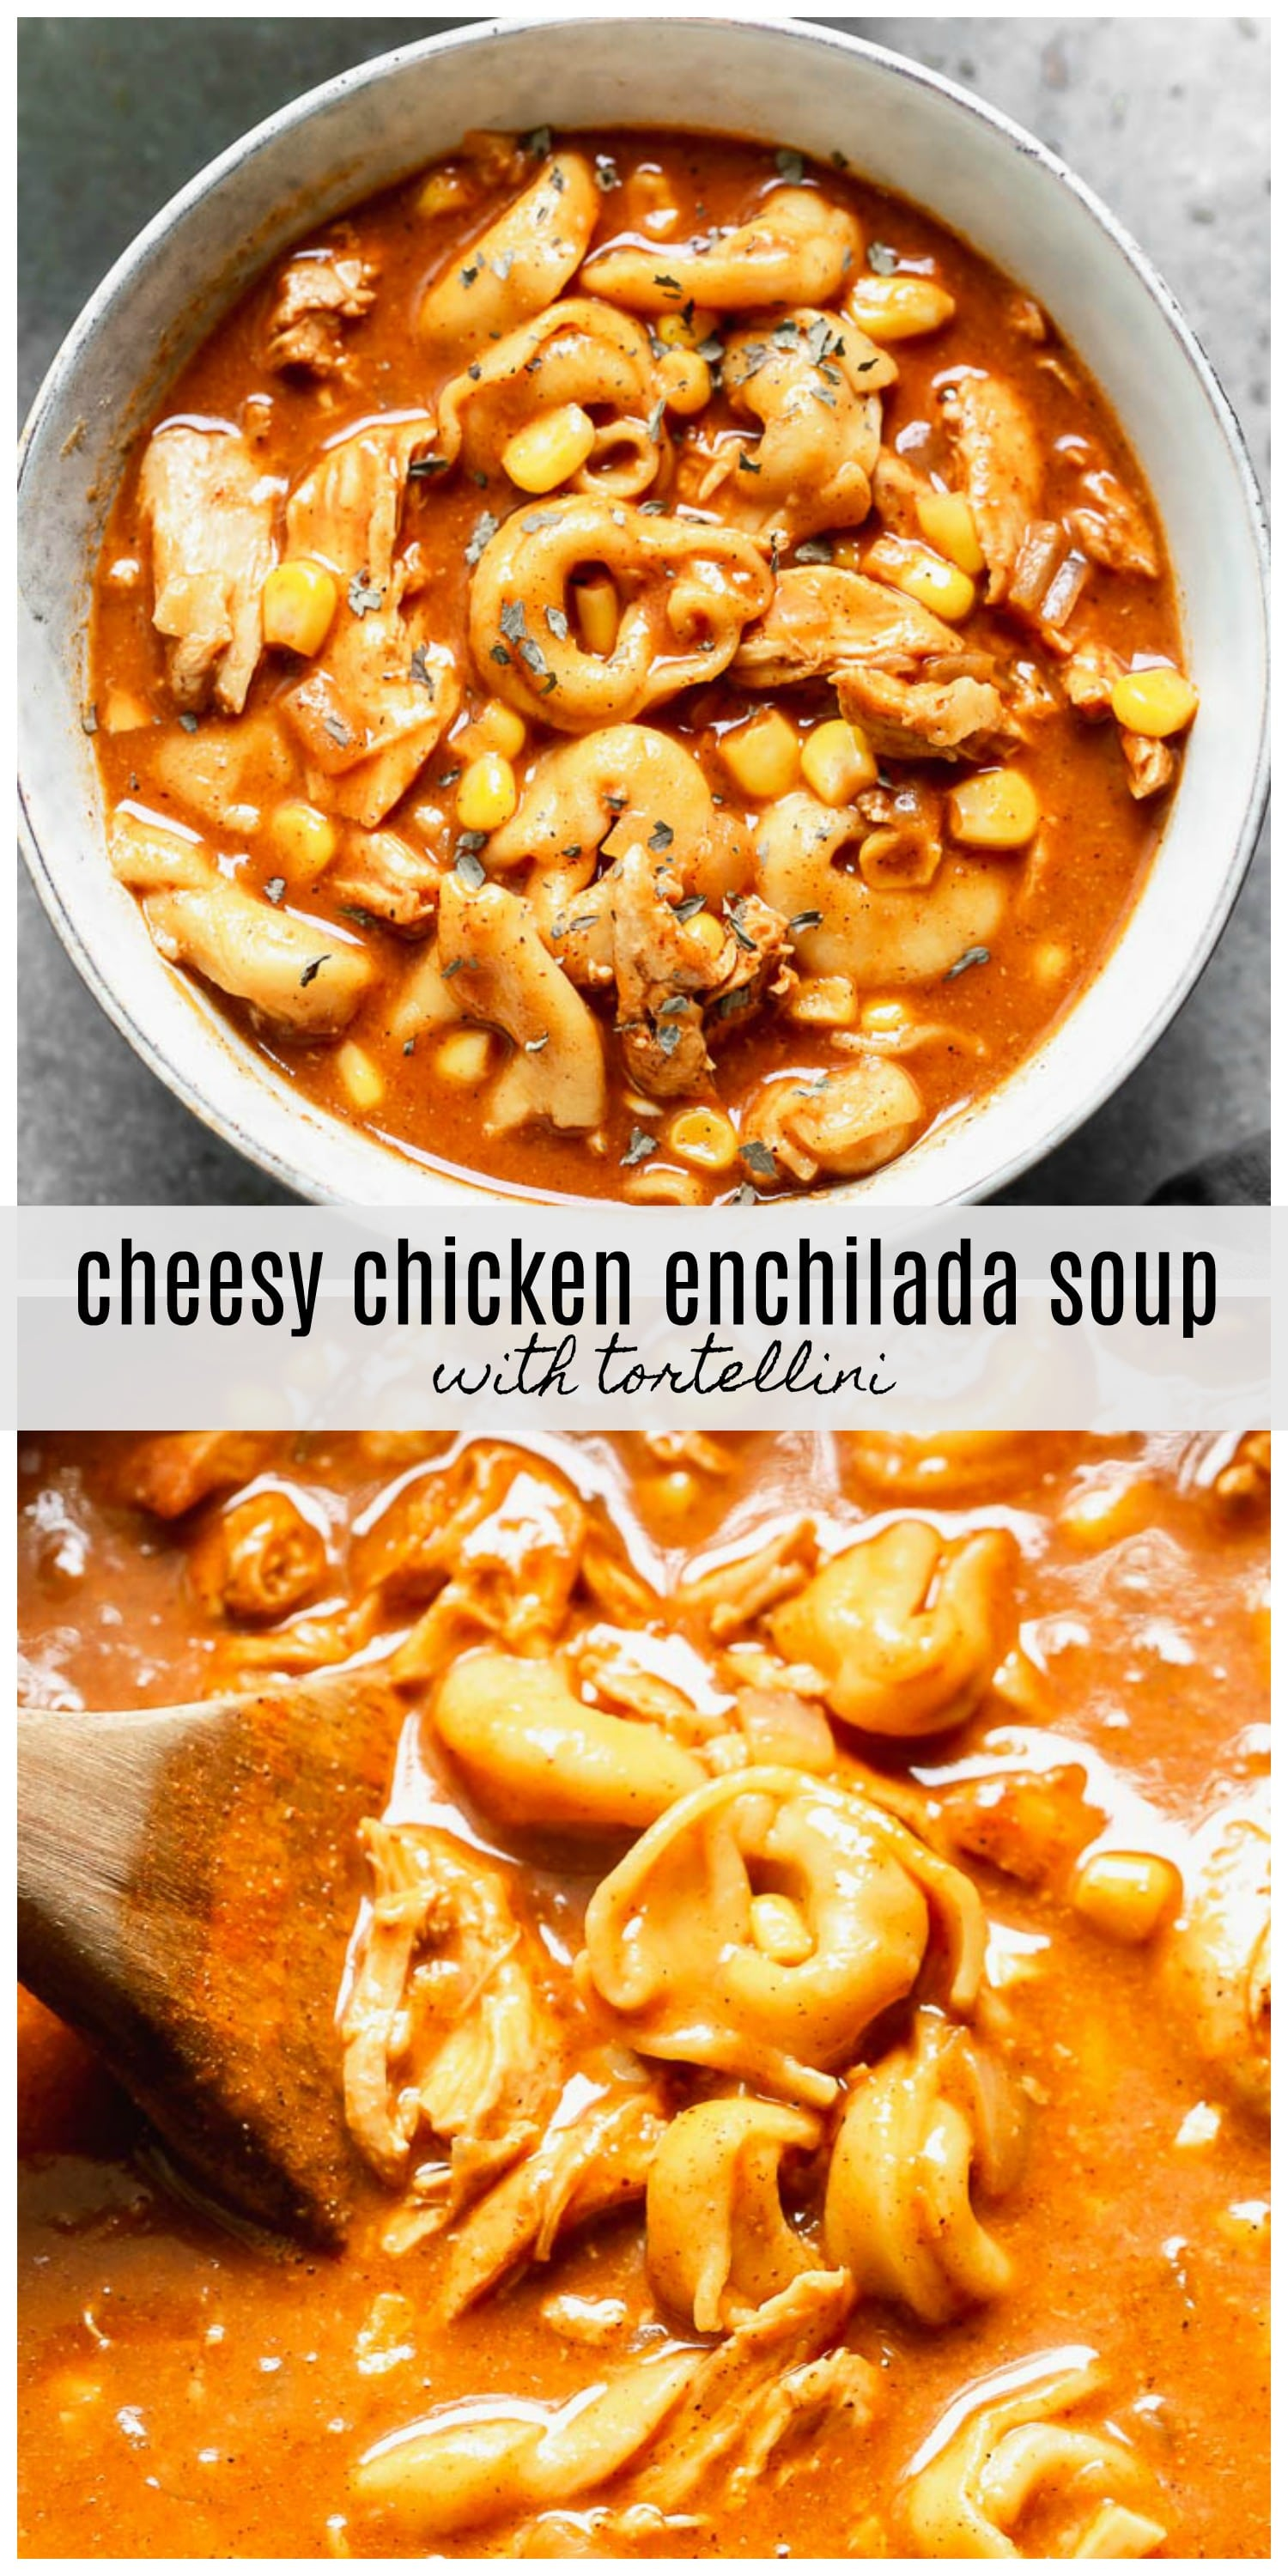 Cheesy Chicken Enchilada Soup with Tortellini is the easiest throw-it-all-in-a-pot, cozy fall soup. It's packed with tender chicken, sweet corn, tortellini, the most delicious enchilada-like flavor, plenty of sharp cheddar cheese. Comforting and so delicious.